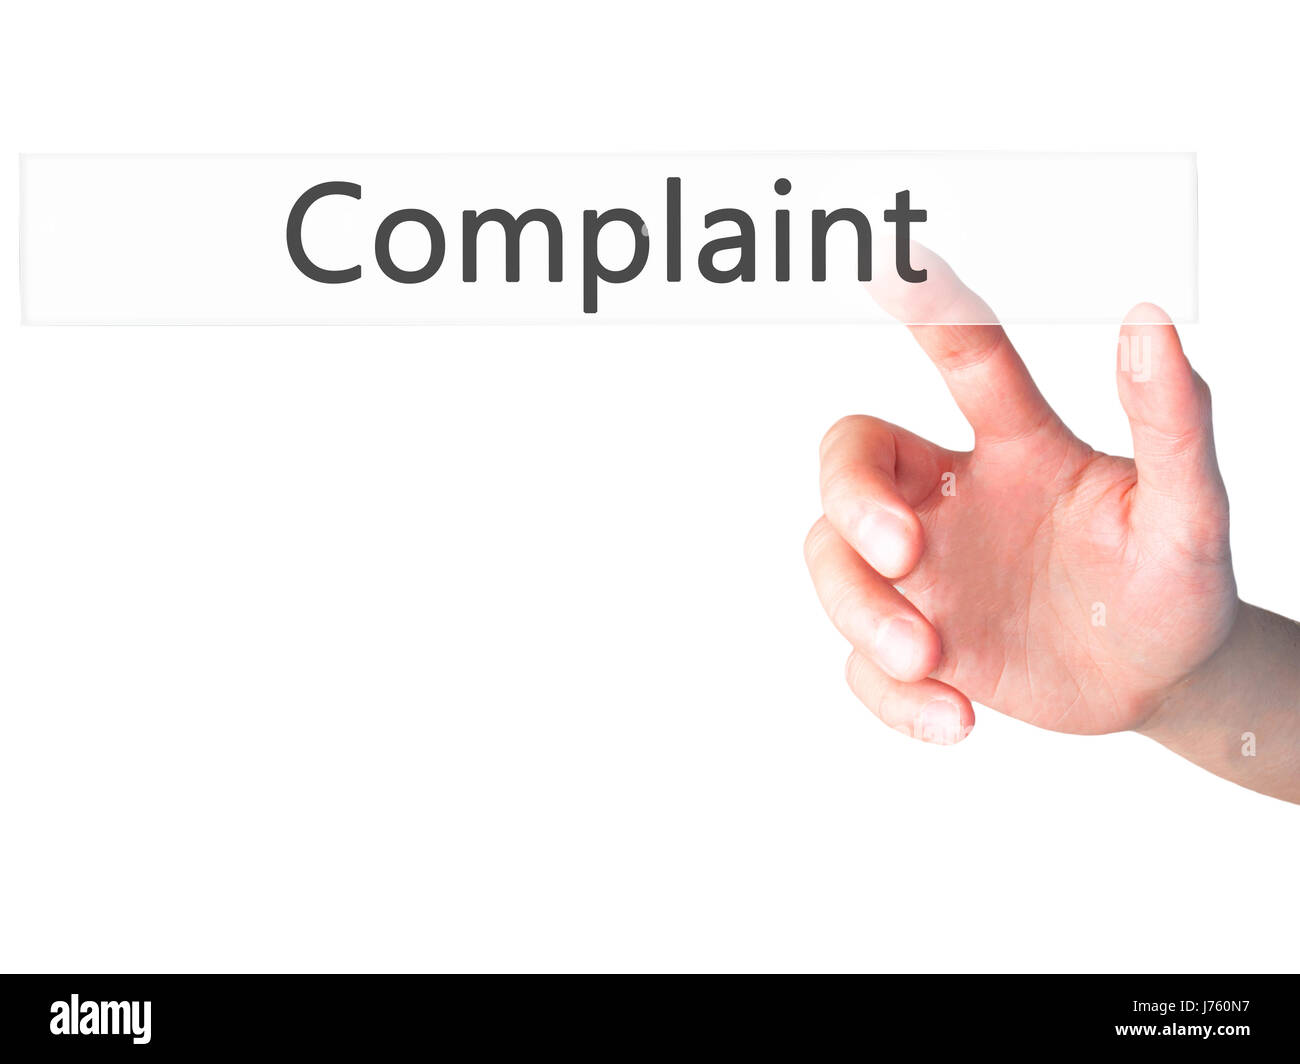 Complaint - Hand pressing a button on blurred background concept . Business, technology, internet concept. Stock - Stock Image